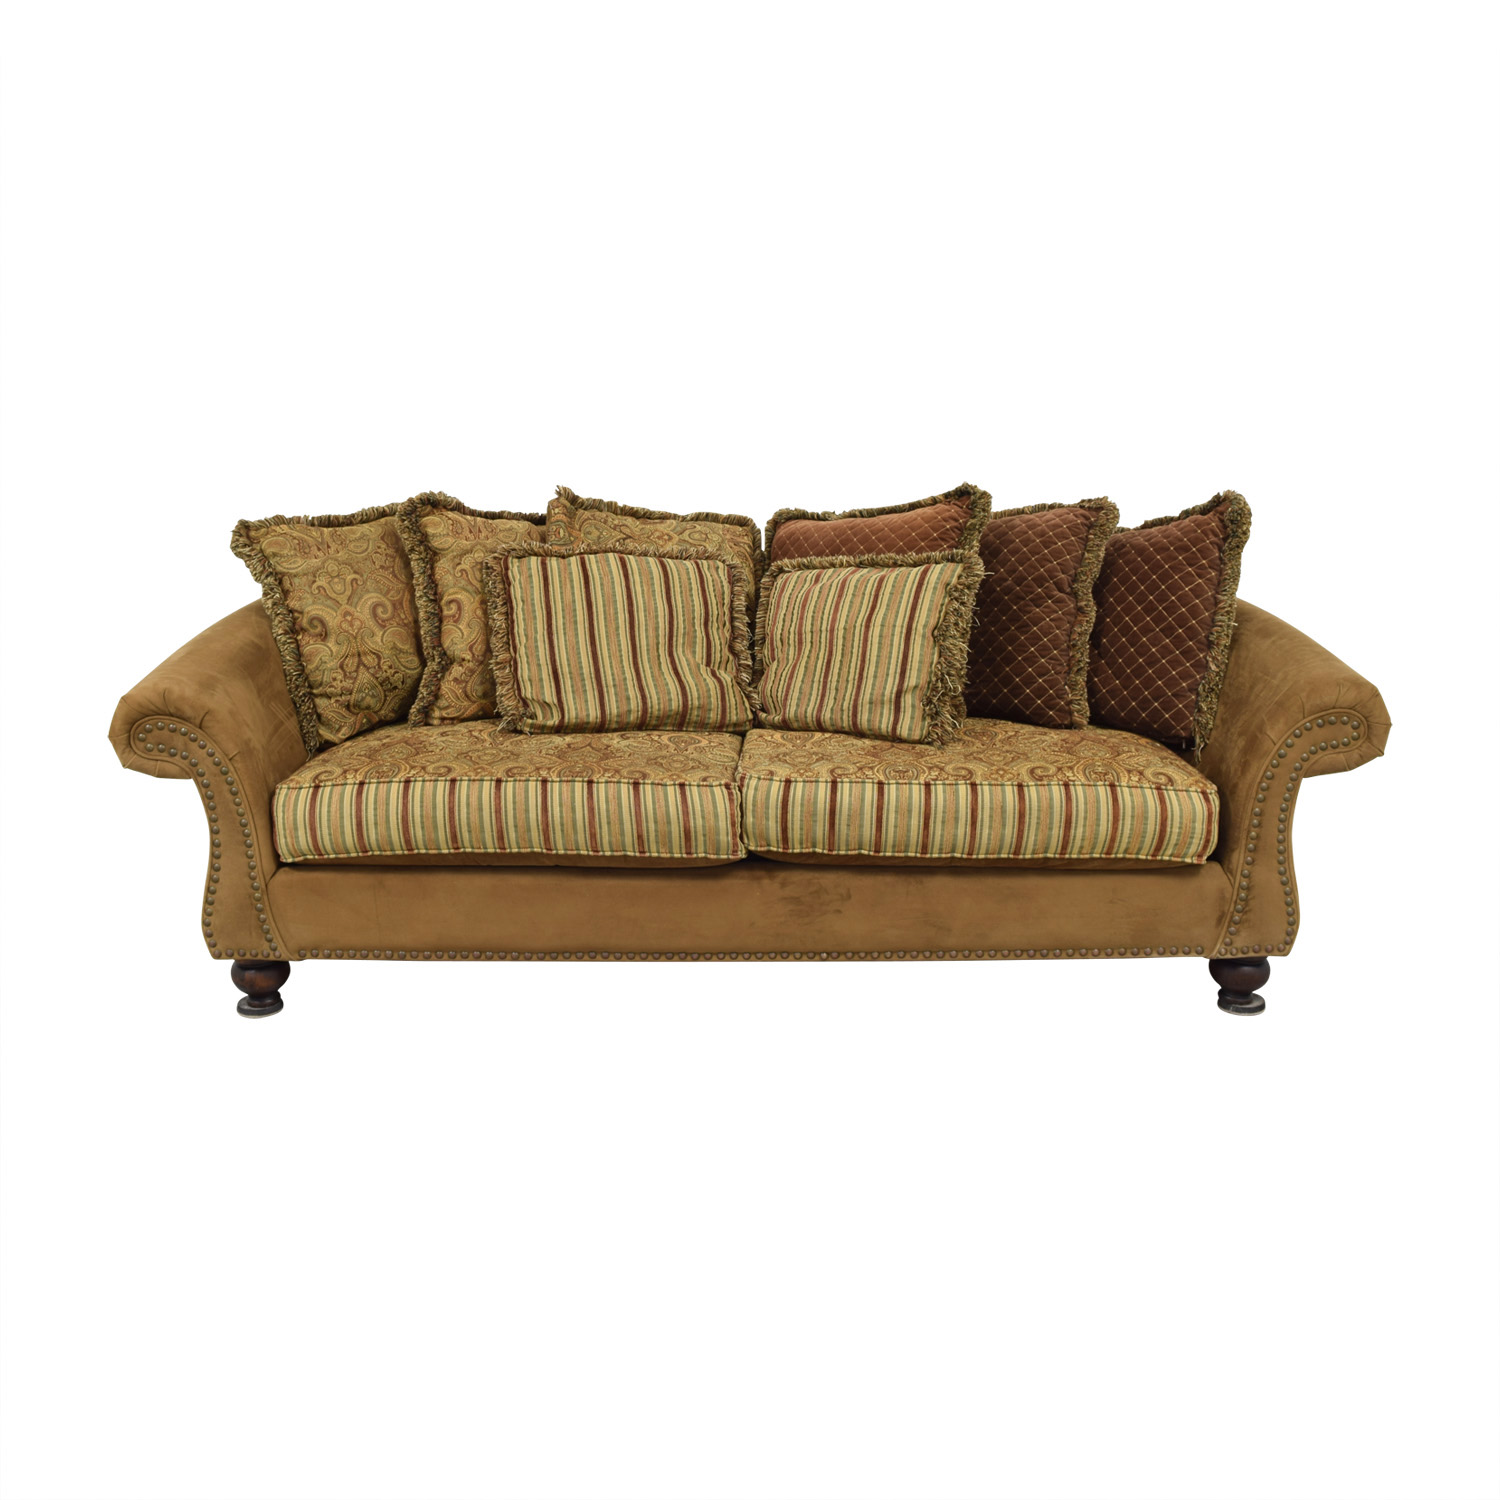 Cindy Crawford Home Cindy Crawford Home Microfiber Faux Suede Nailhead Two-Cushion Couch dimensions